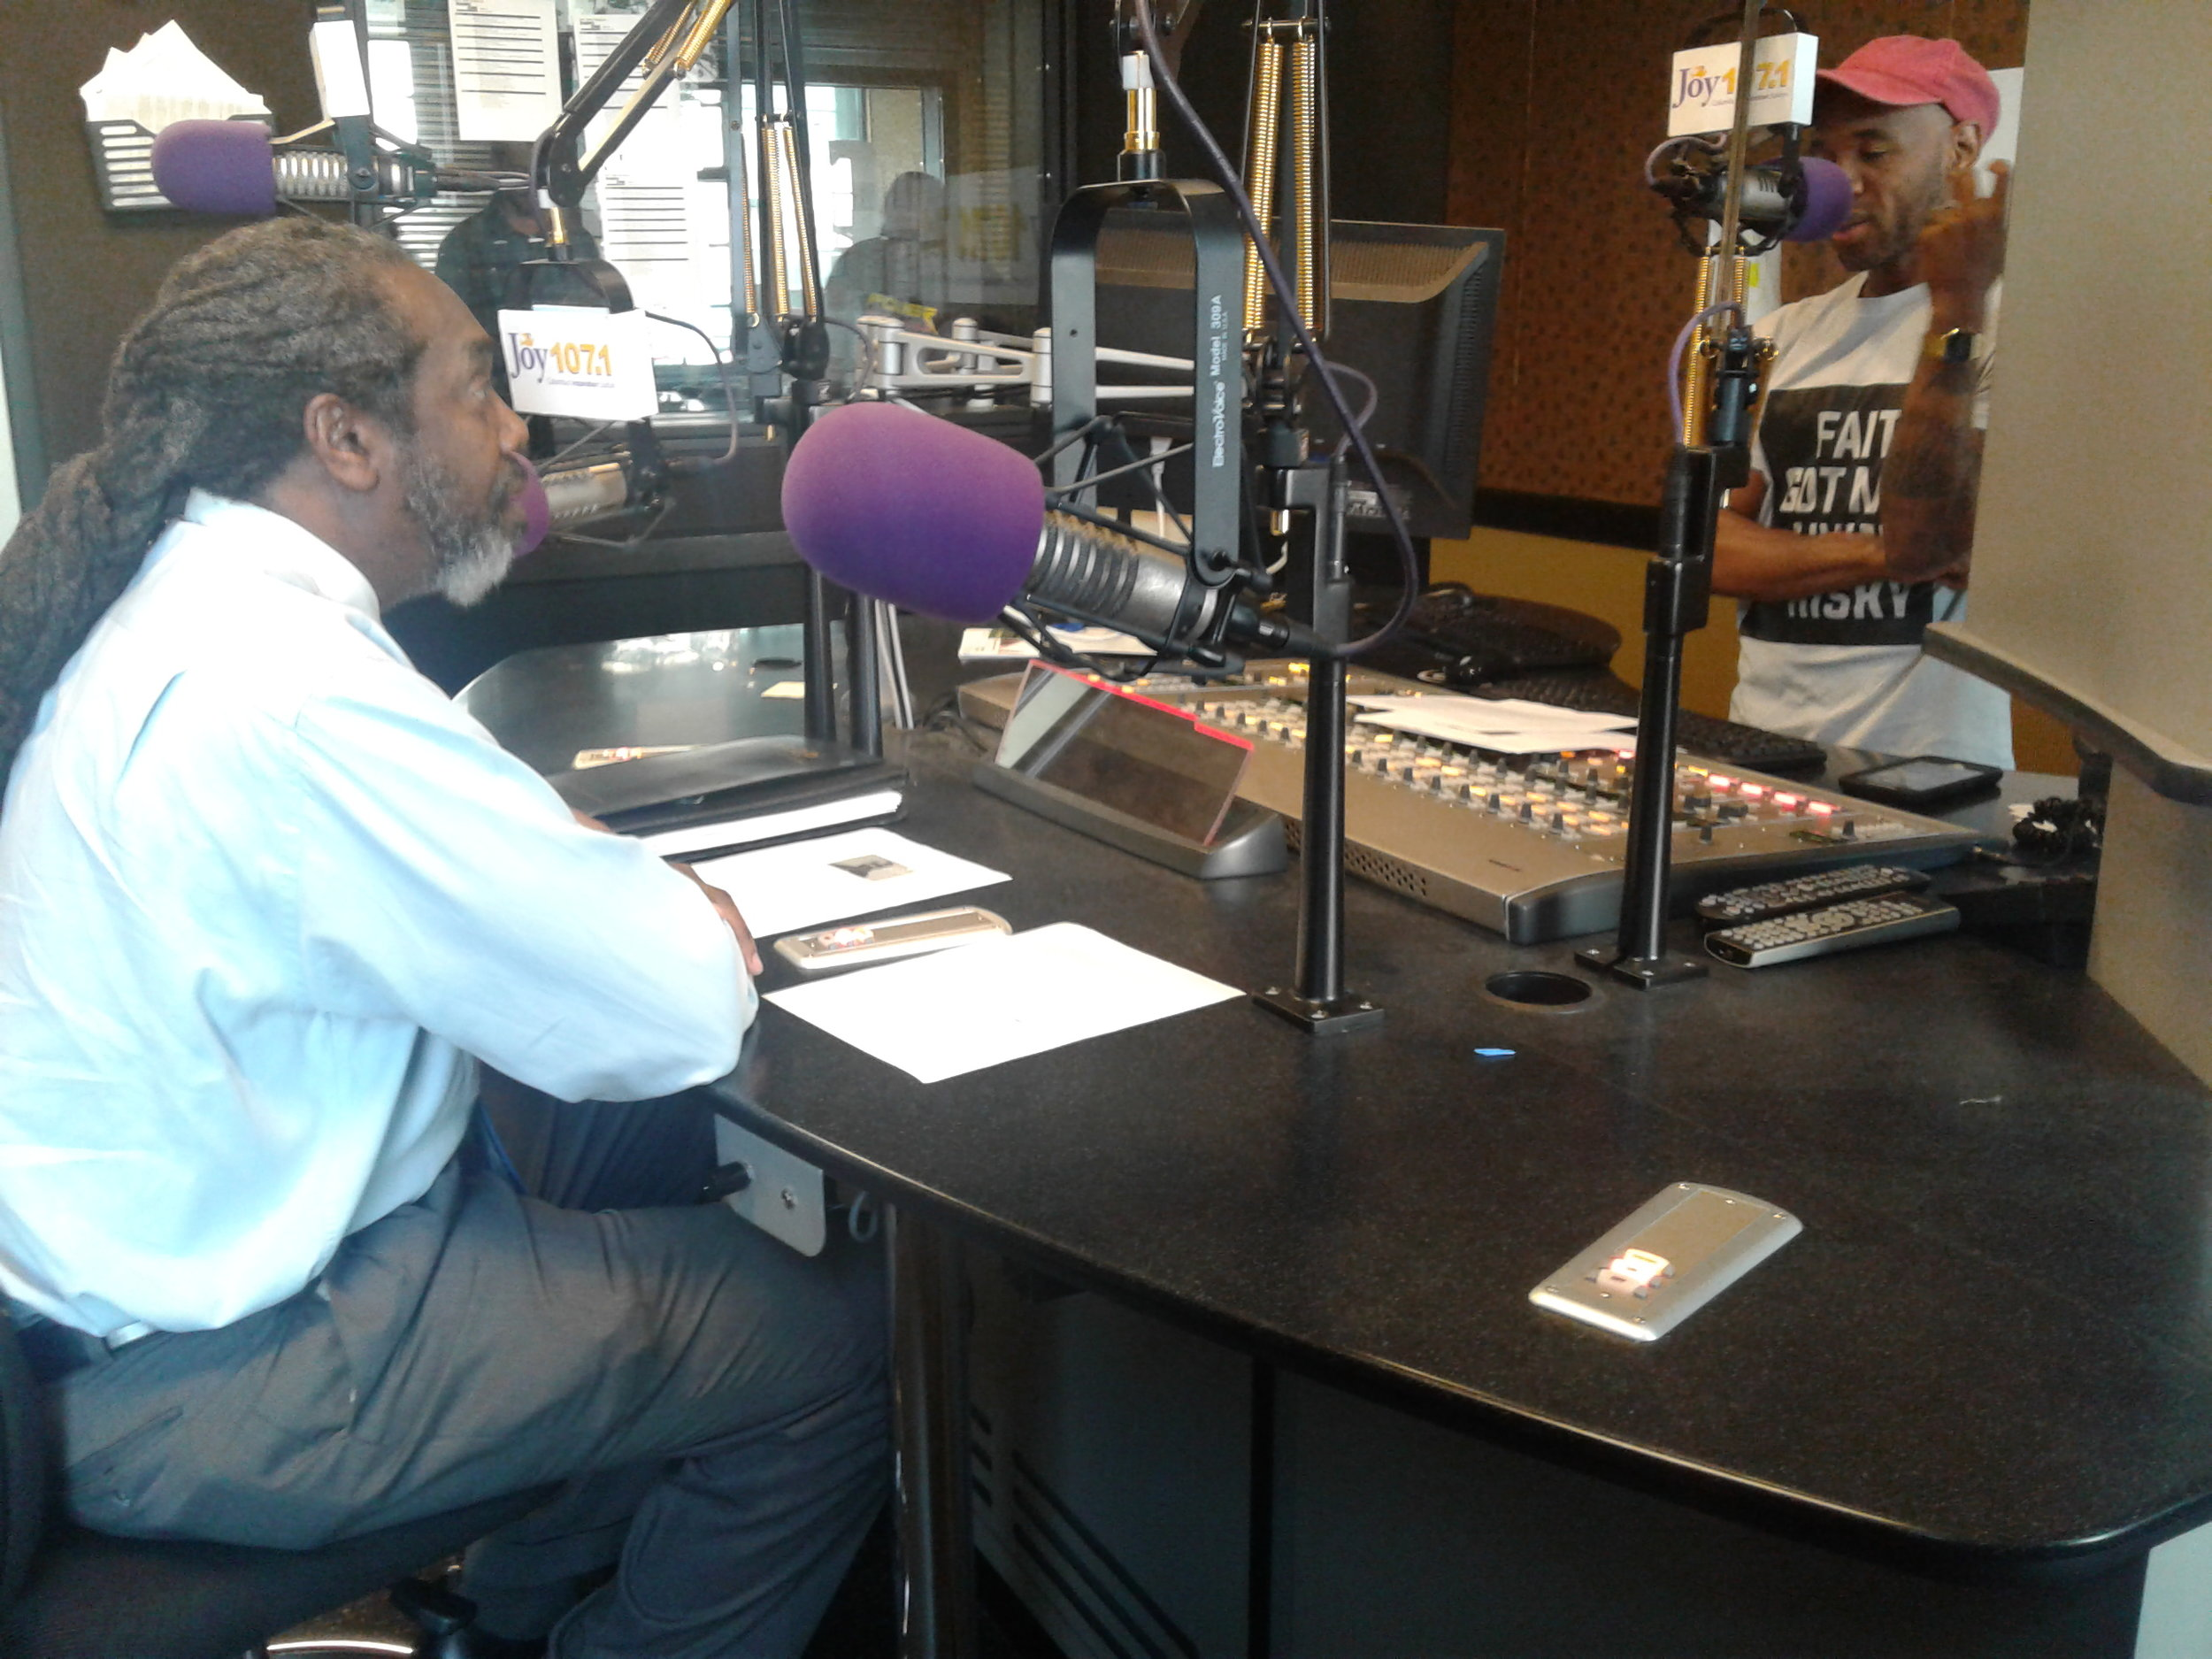 Homeport Senior Counseling Advisor Layden Hale, left, visited Radio-One Columbus studios in June. Layden was interviewed by 'Eye on the Community' program host Yaves Ellis. Click below and listen to Layden talk about Financial Fitness education offered by Homeport and its role in homeownership. June was National Homeownership Month.